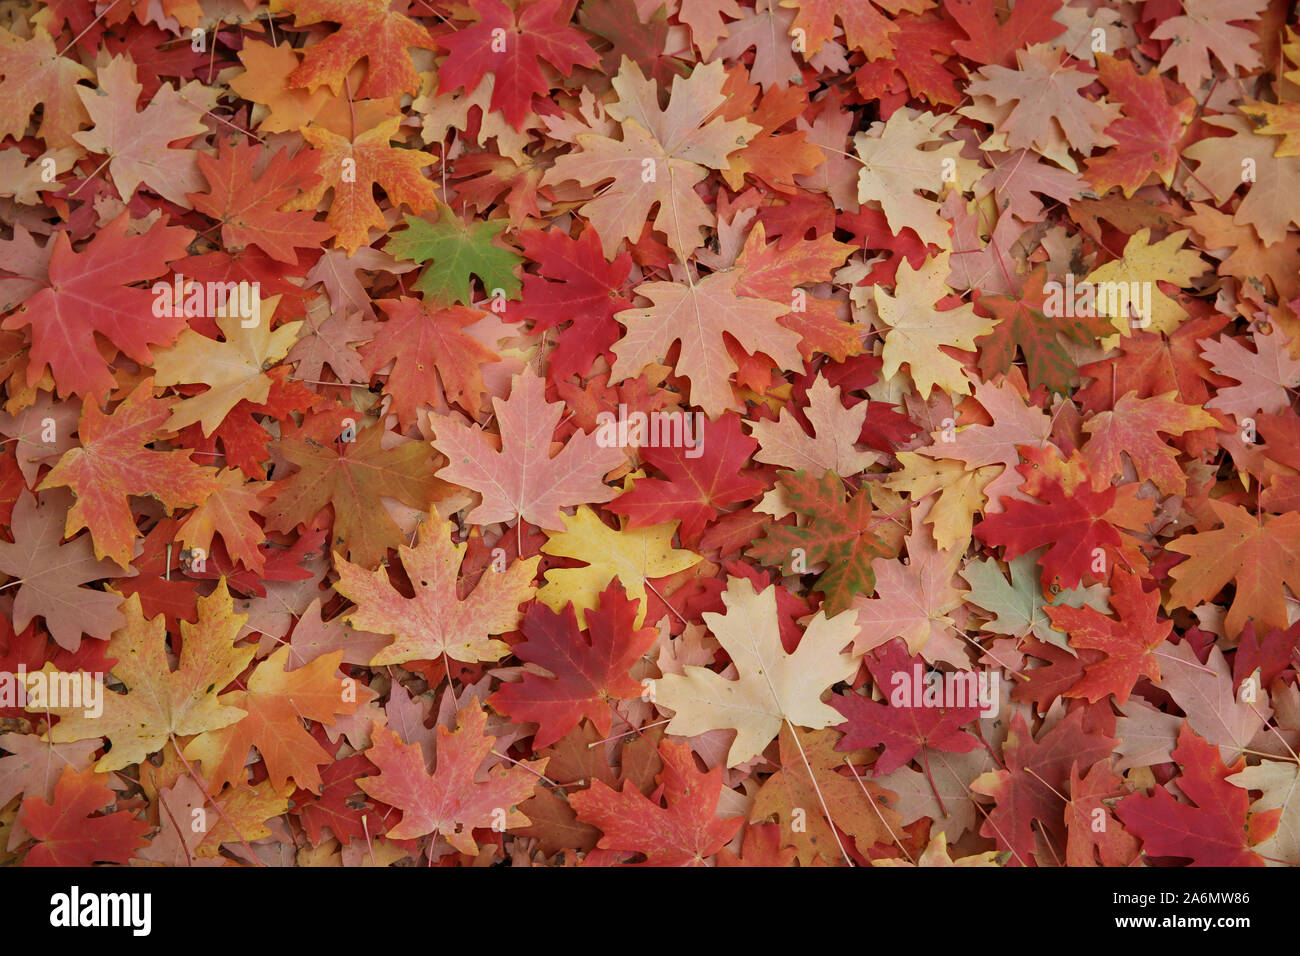 Maple leaves covering the ground under the tree Stock Photo